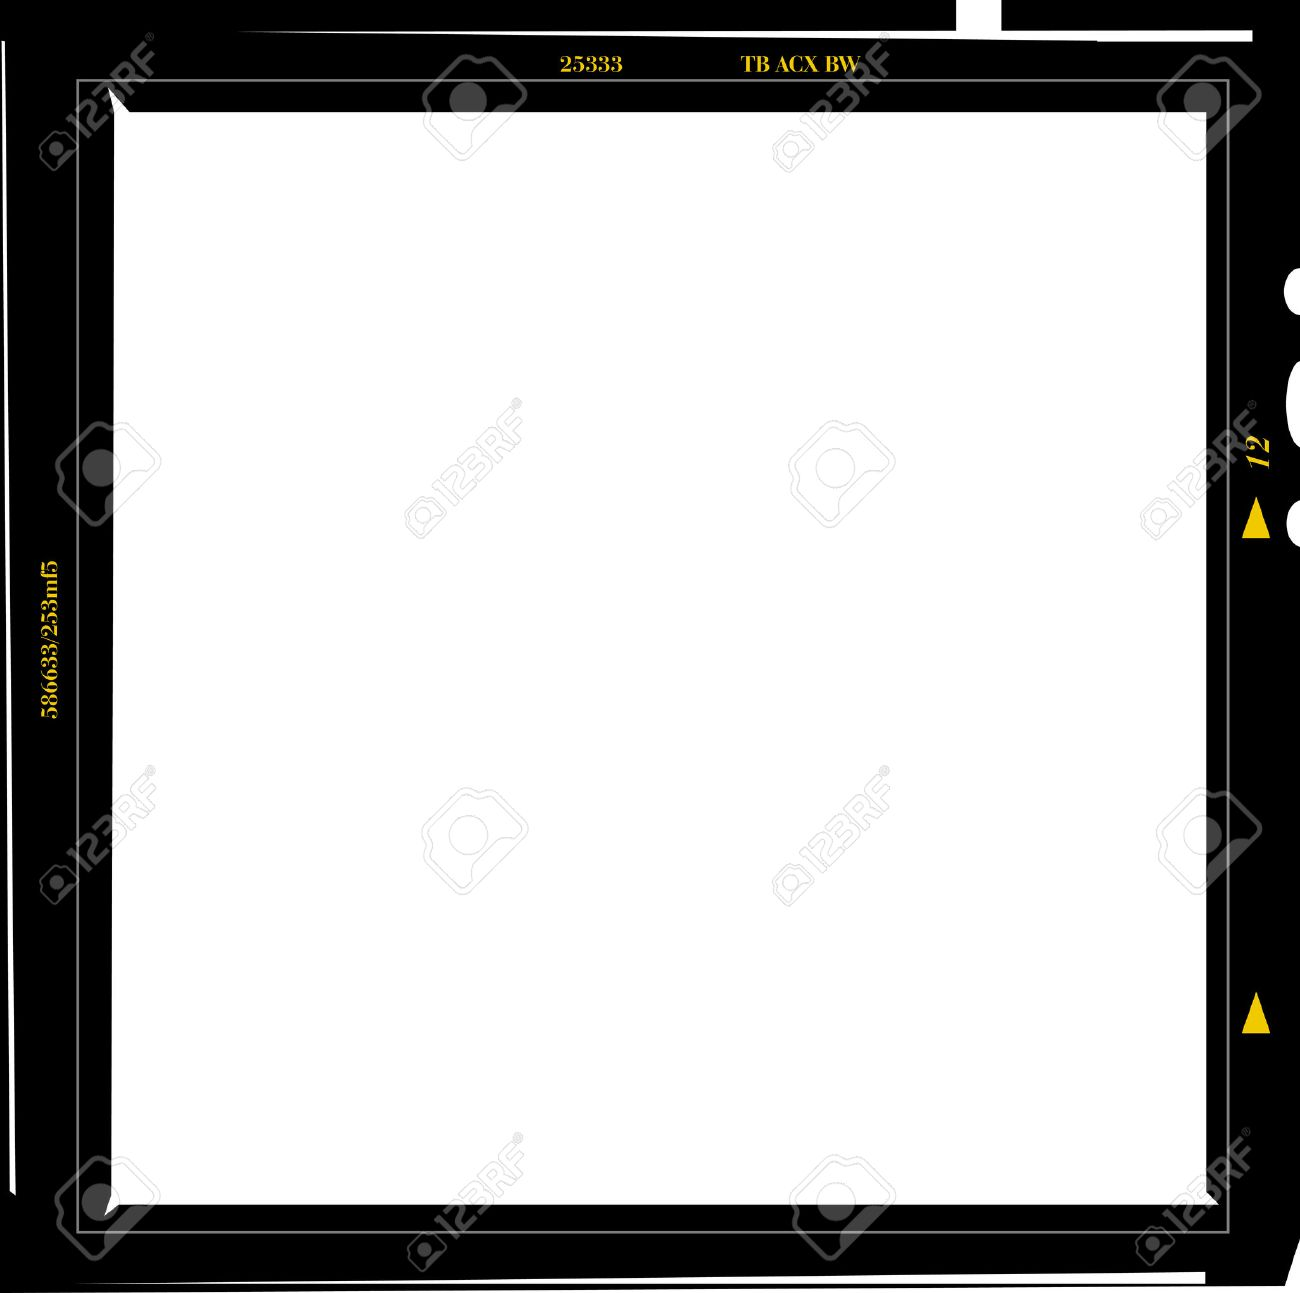 Medium Format Negative Photo Frame, Free Copy Space, Isolated ...